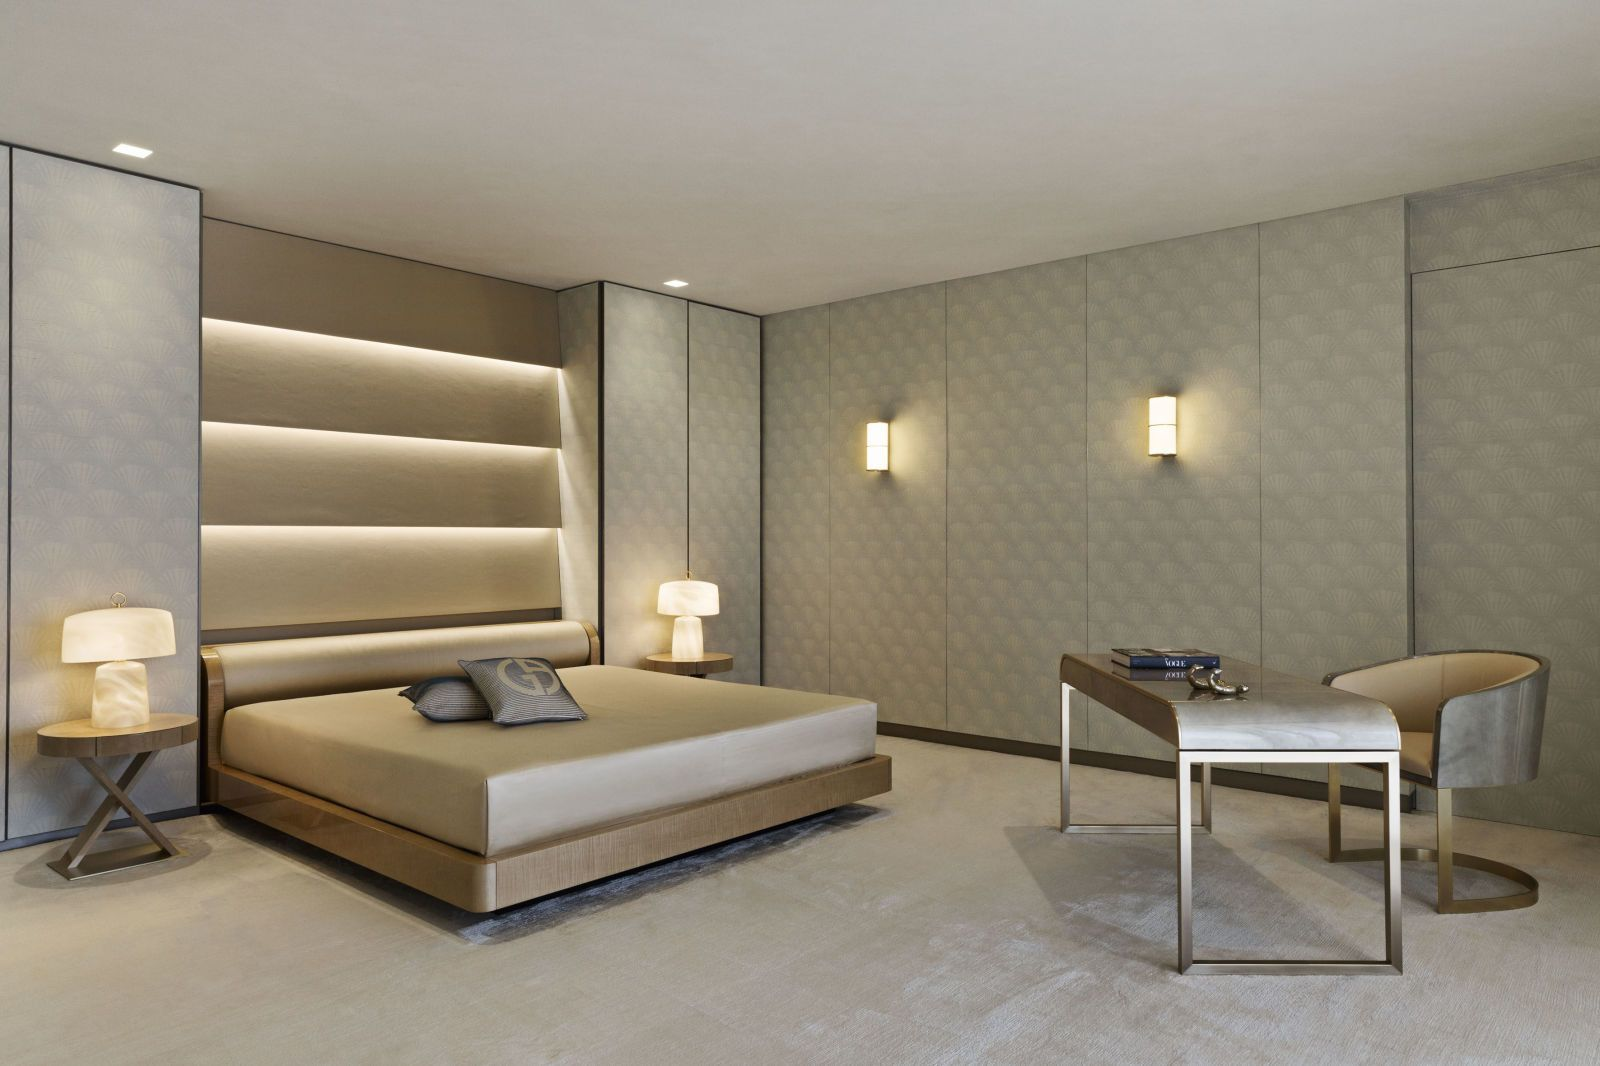 17 Best images about ARMANI CASA on Pinterest   Wooden sideboards  Dubai  and Armchairs. 17 Best images about ARMANI CASA on Pinterest   Wooden sideboards